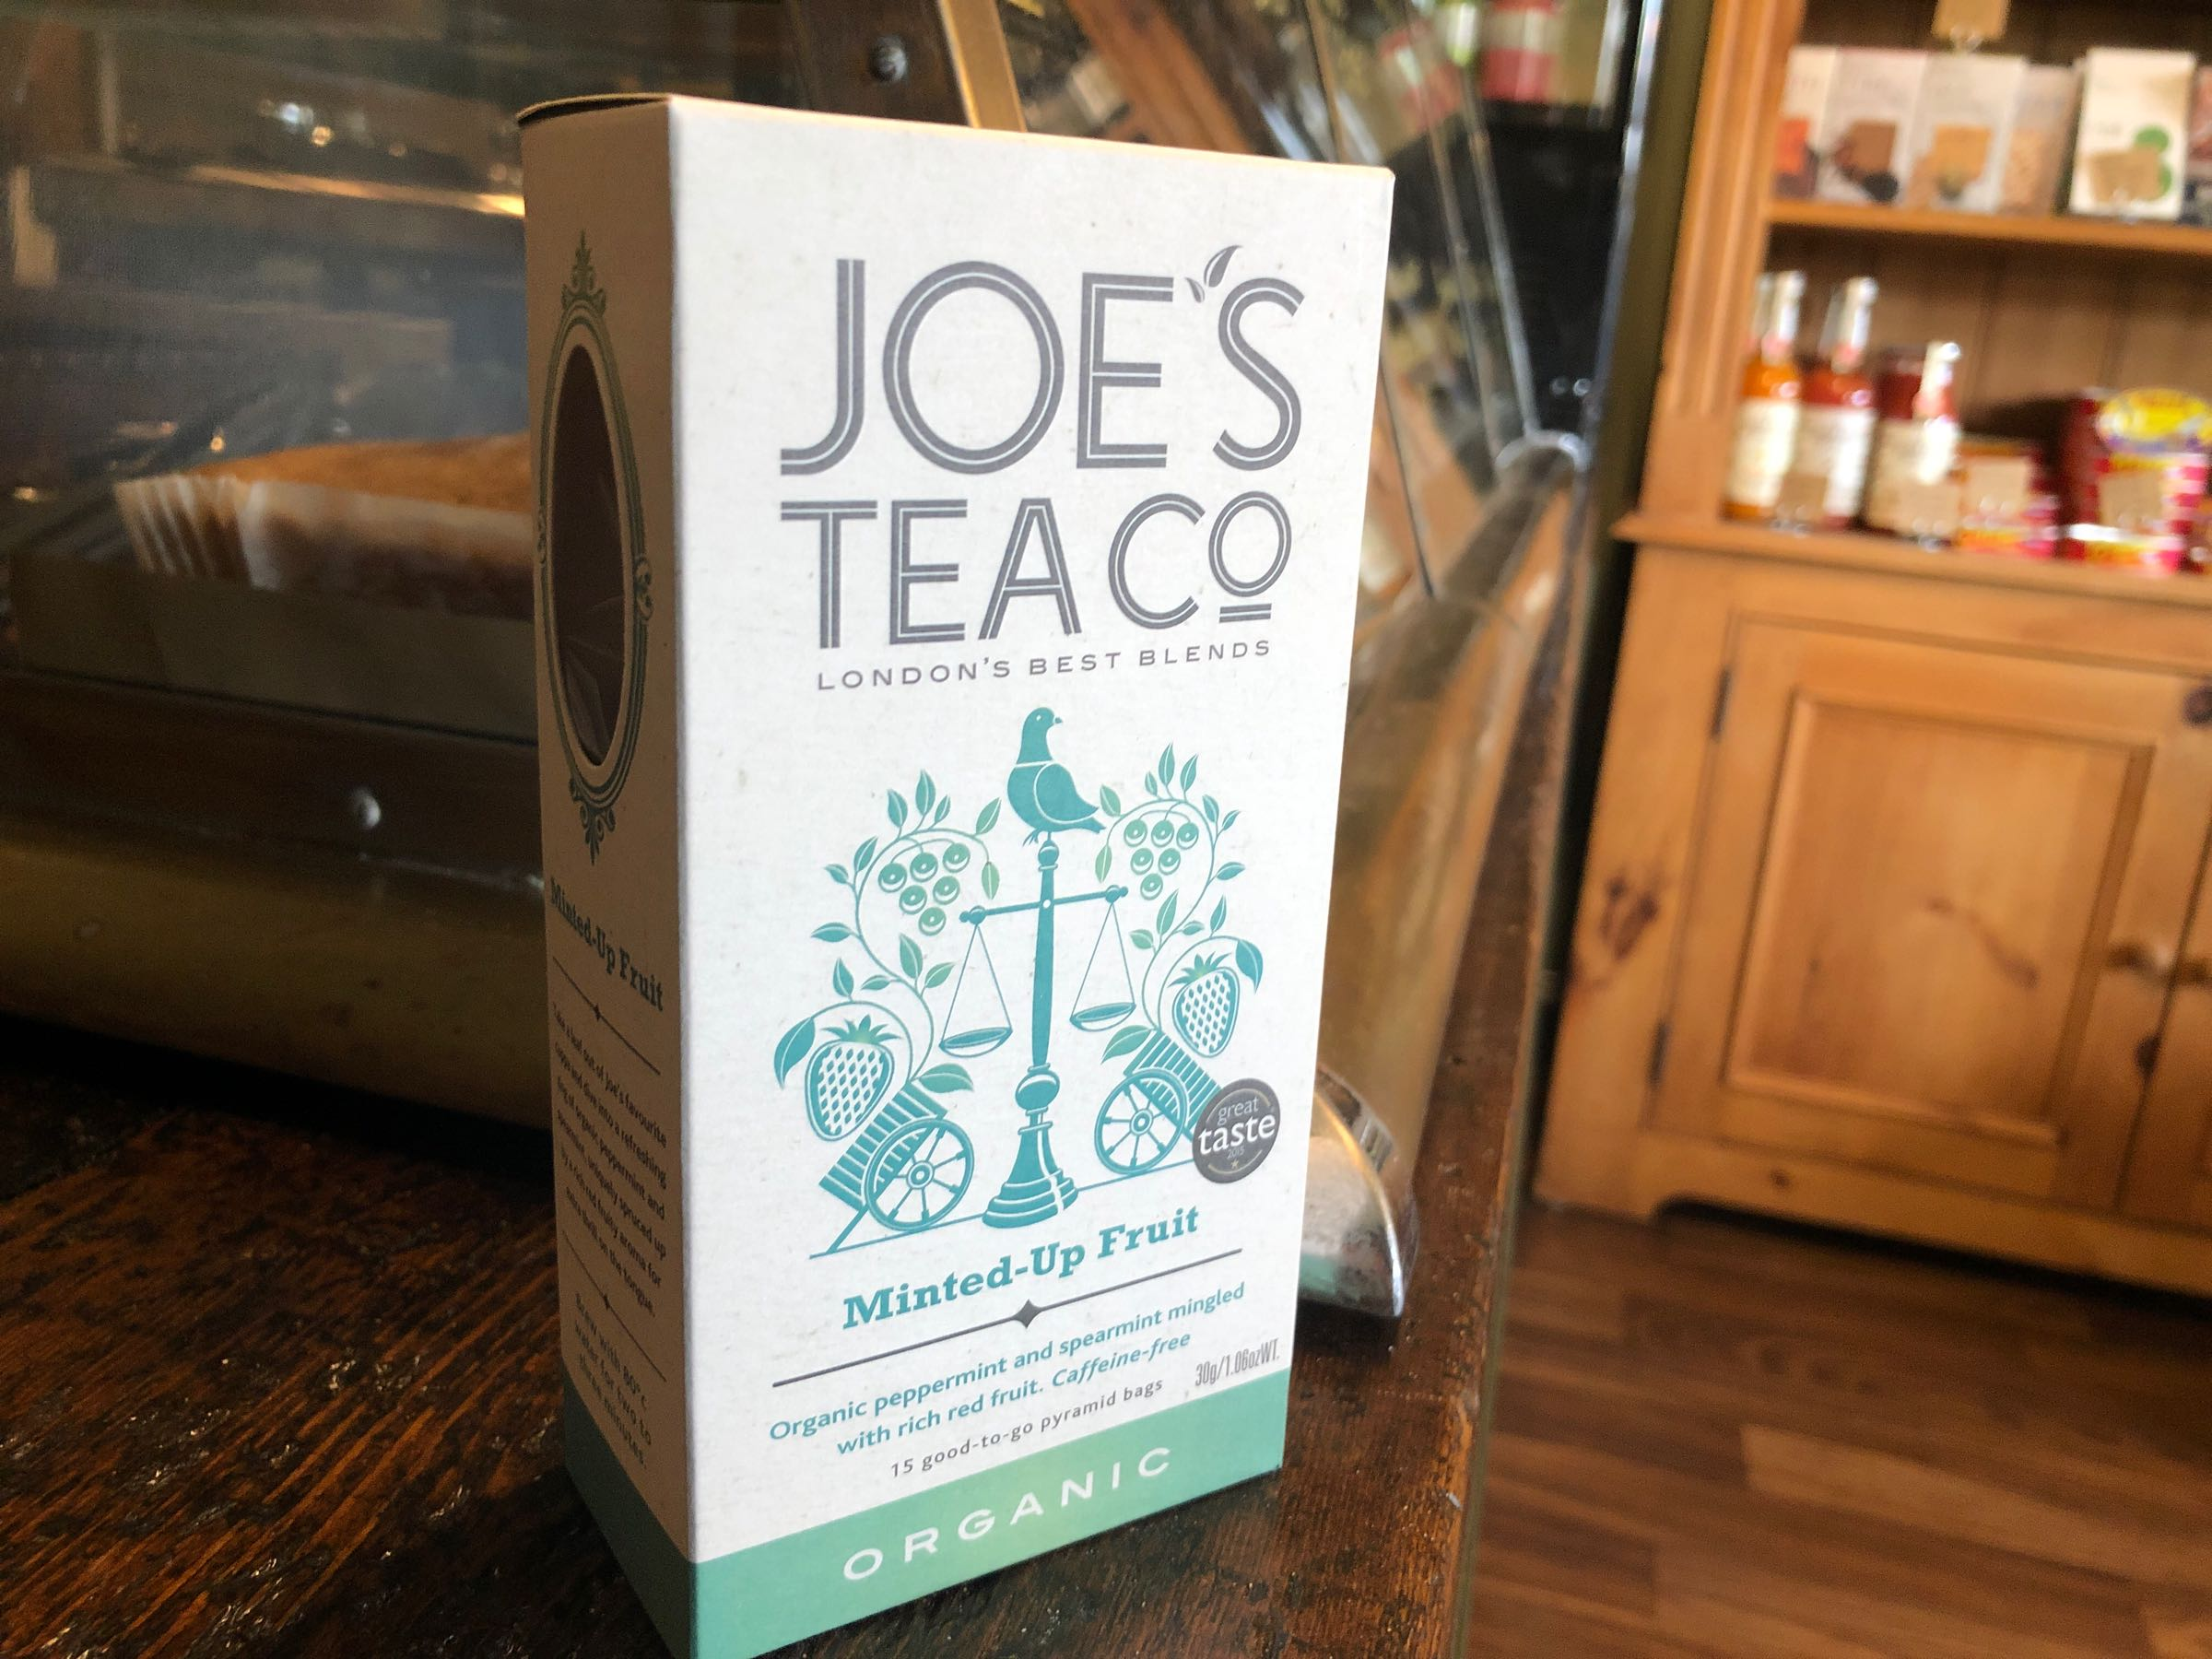 Joe's Tea Co. Minted-Up Fruit - Organic